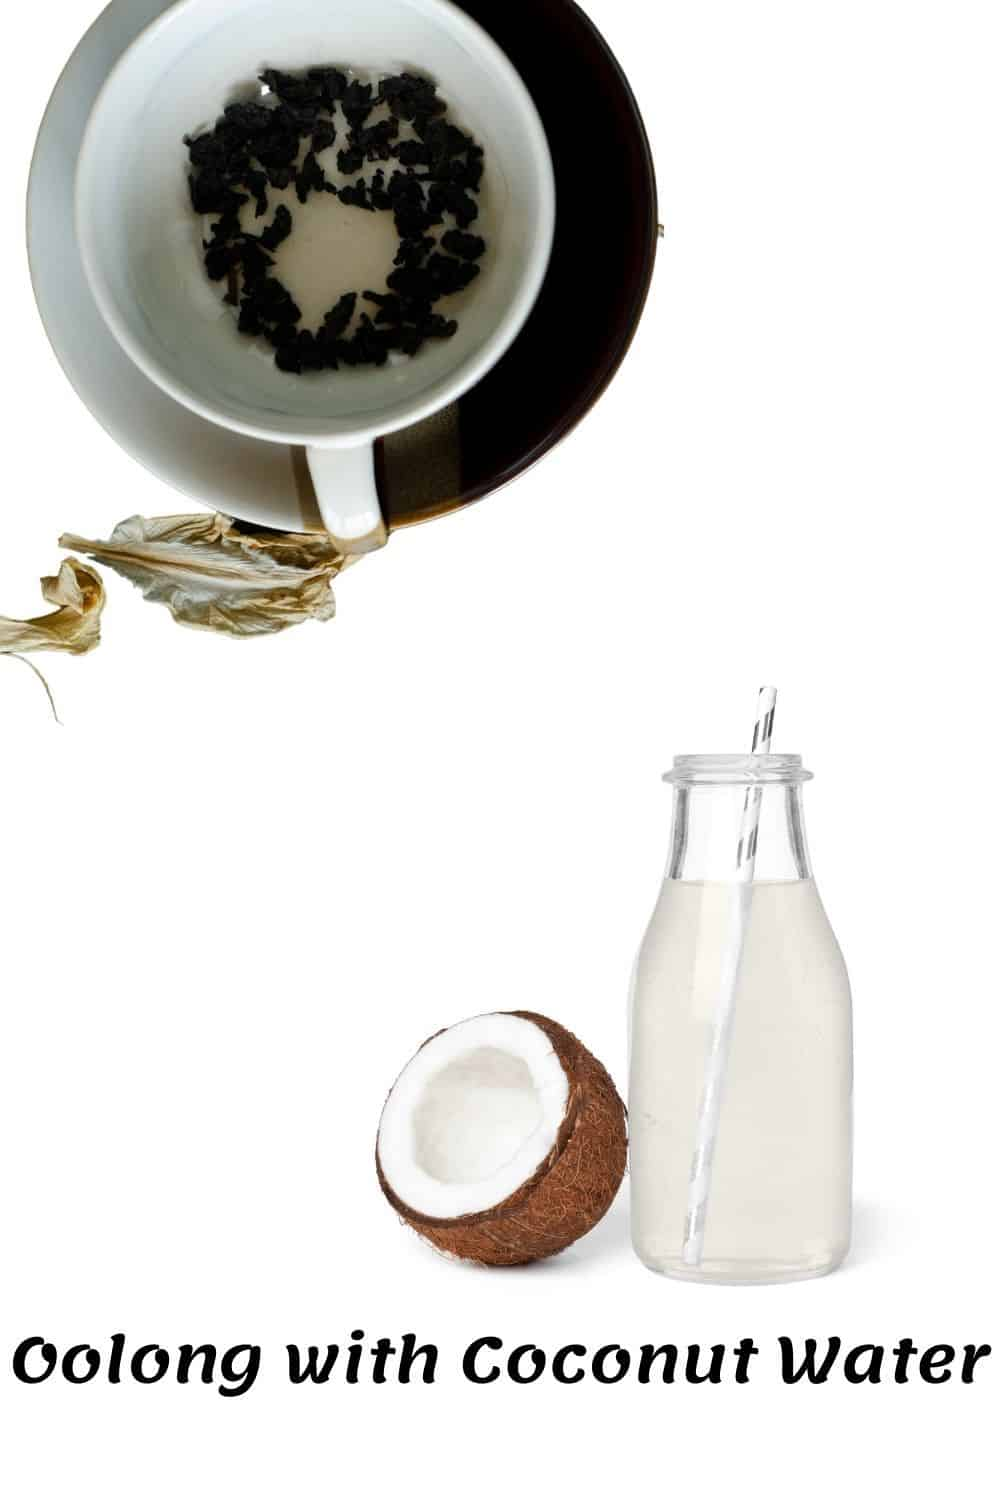 Oolong tea with Coconut water what to flavor your oolong tea with